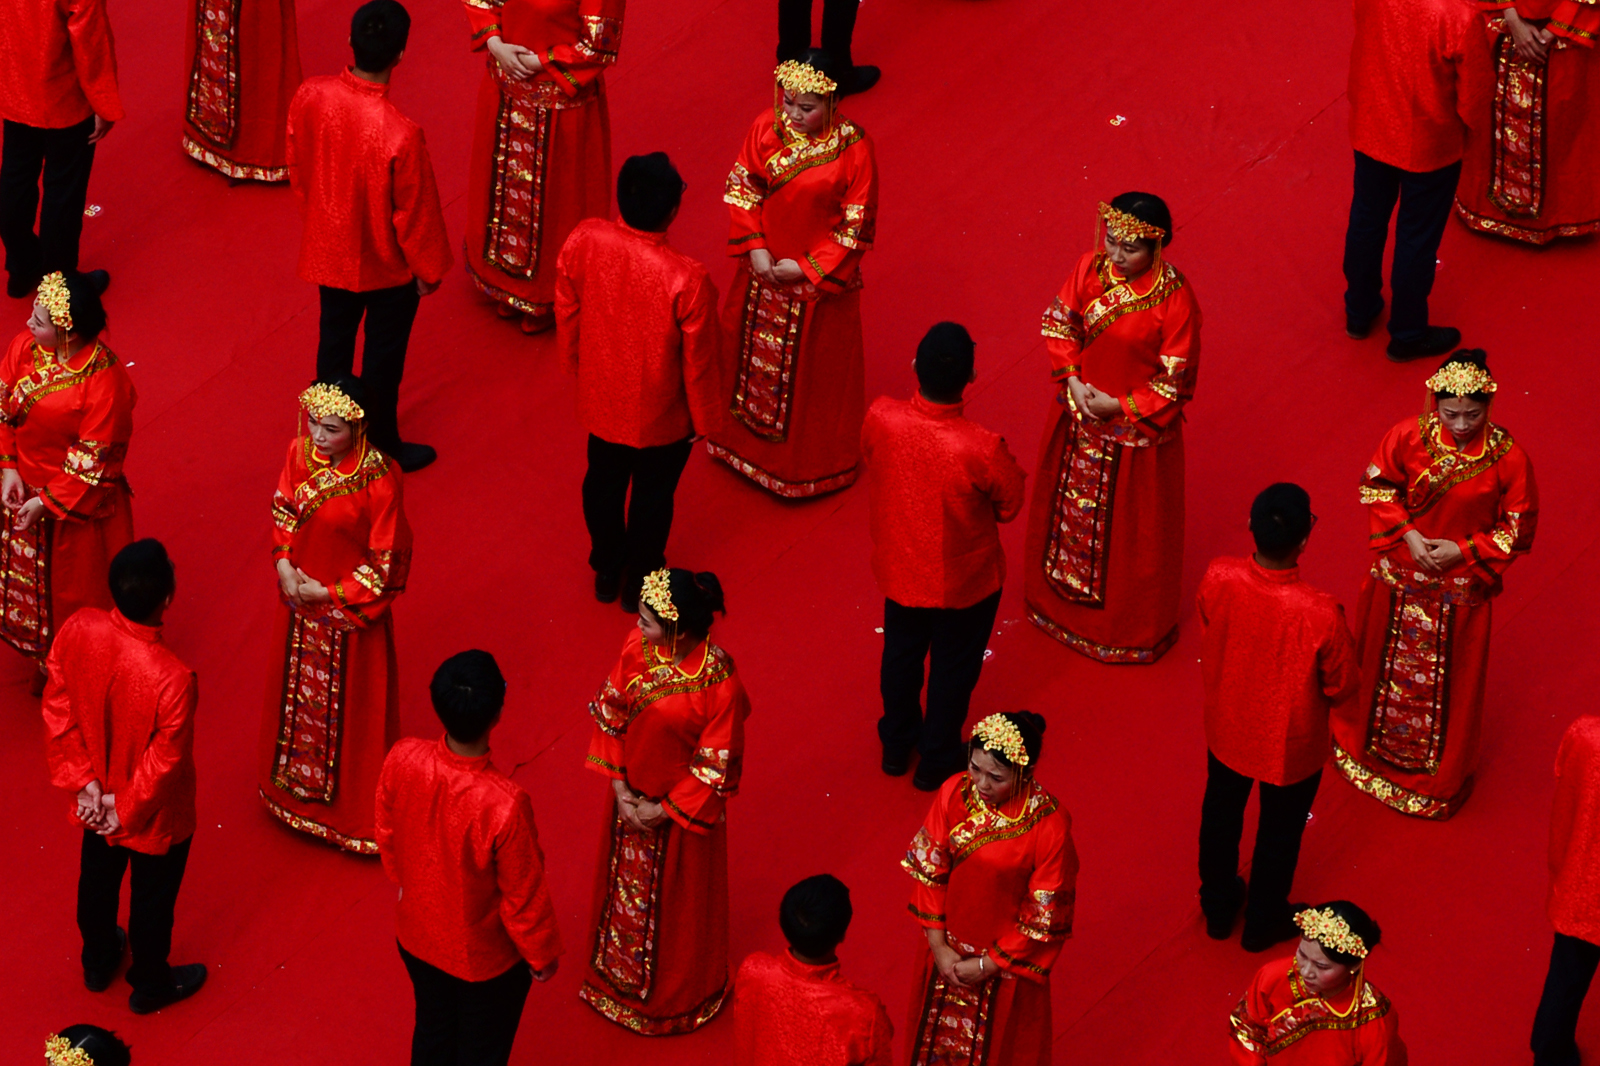 Newly-wed couples attend a group wedding ceremony in traditional Han Dynasty style at Ganzhou, Jiangxi province, China